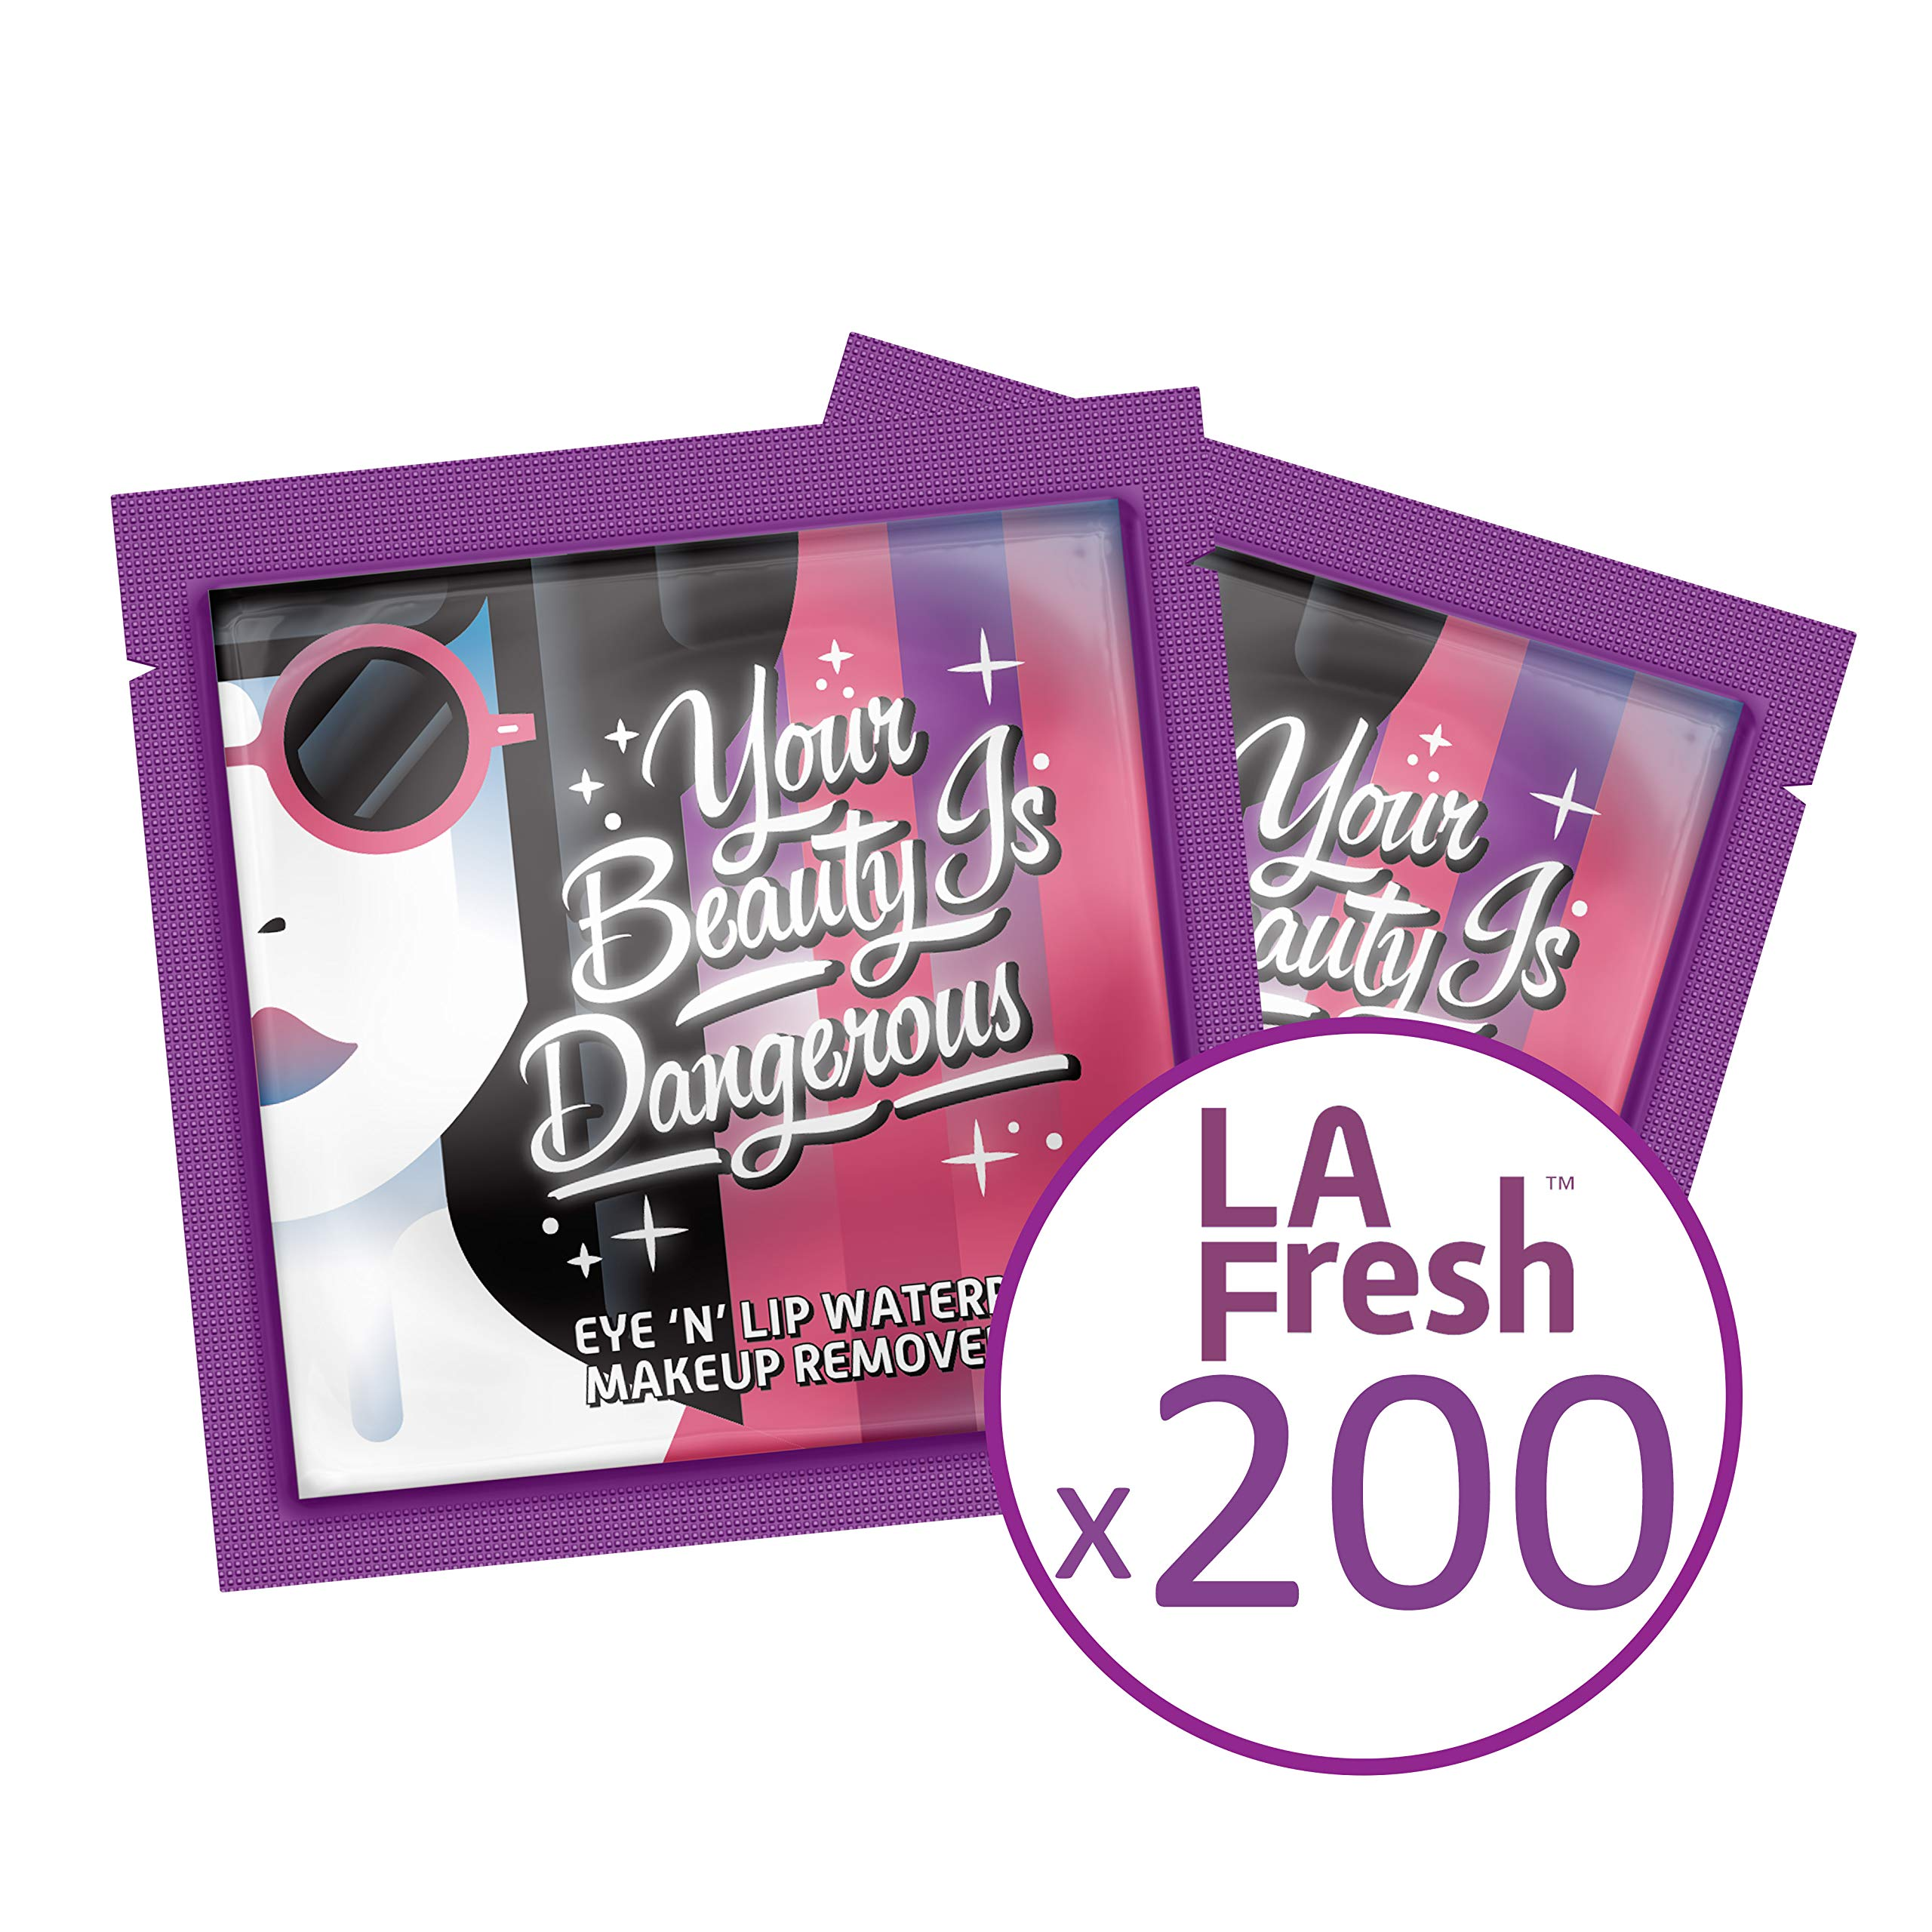 LA Fresh Highly Natural Travel-Friendly, Eyes and Lips Waterproof Makeup Remover Wipes with Lavender Essential oil, Individually Sealed Packets (200 Packets)